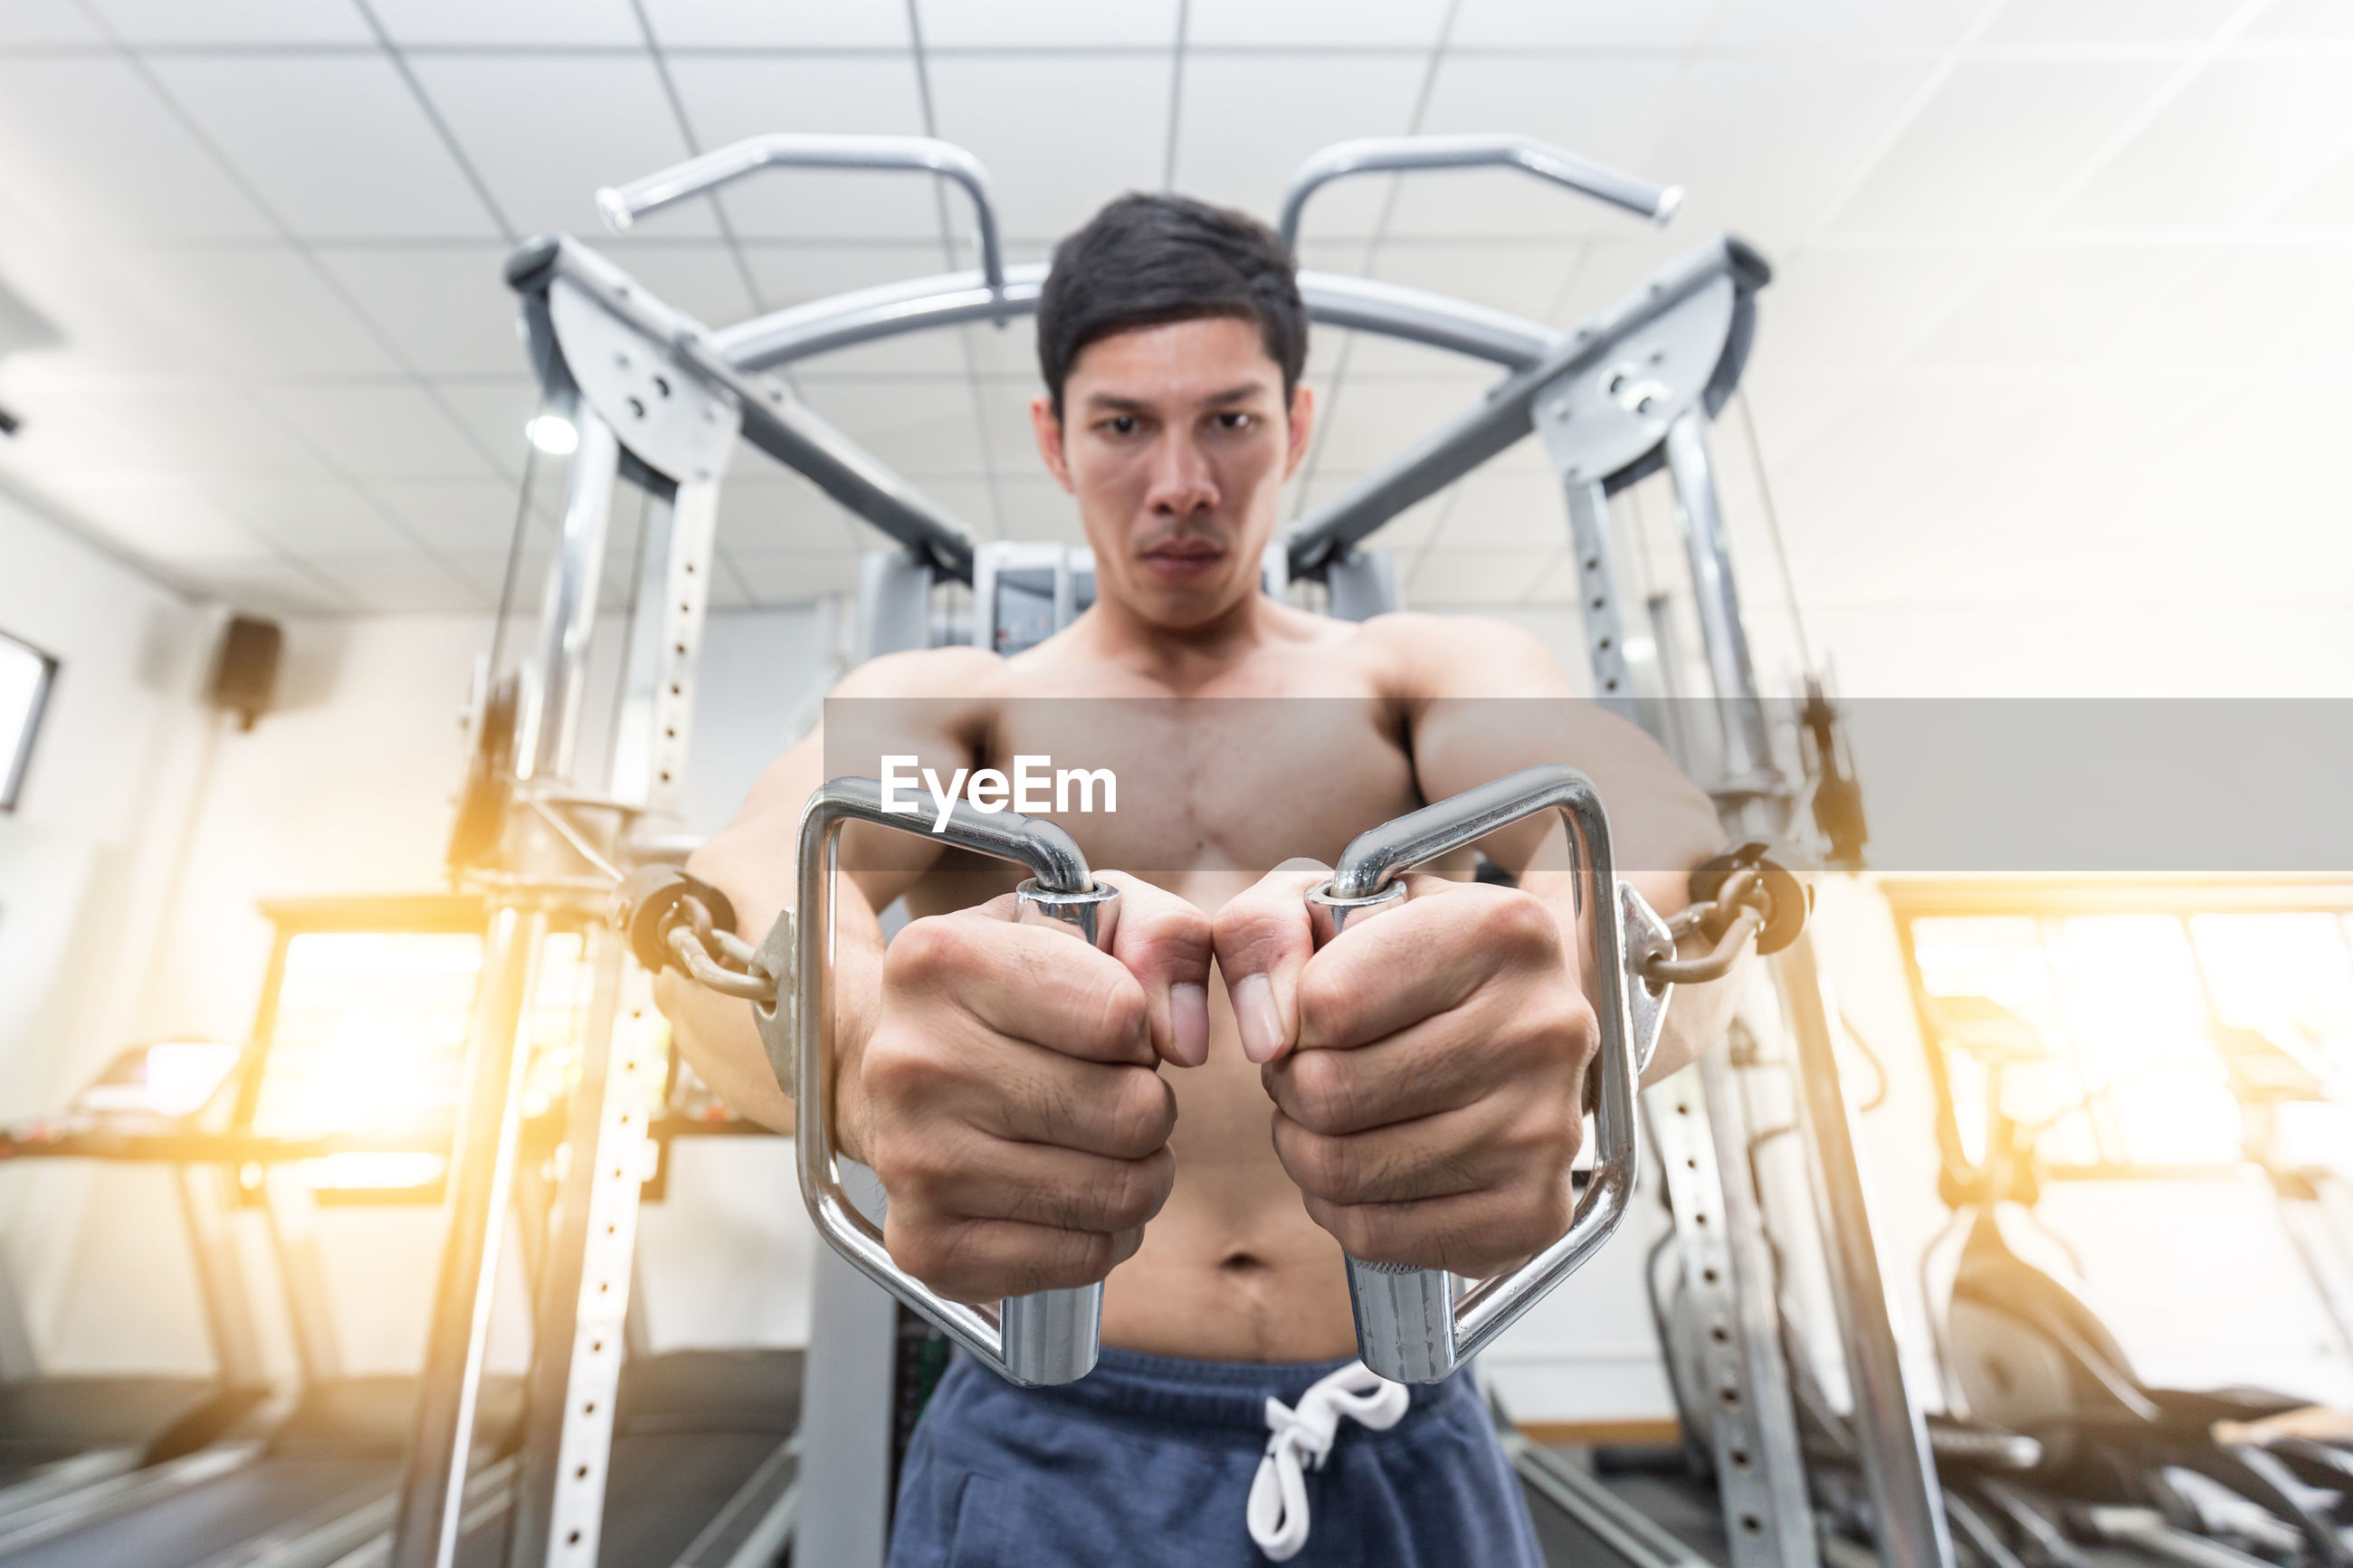 Portrait of shirtless man exercising in gym